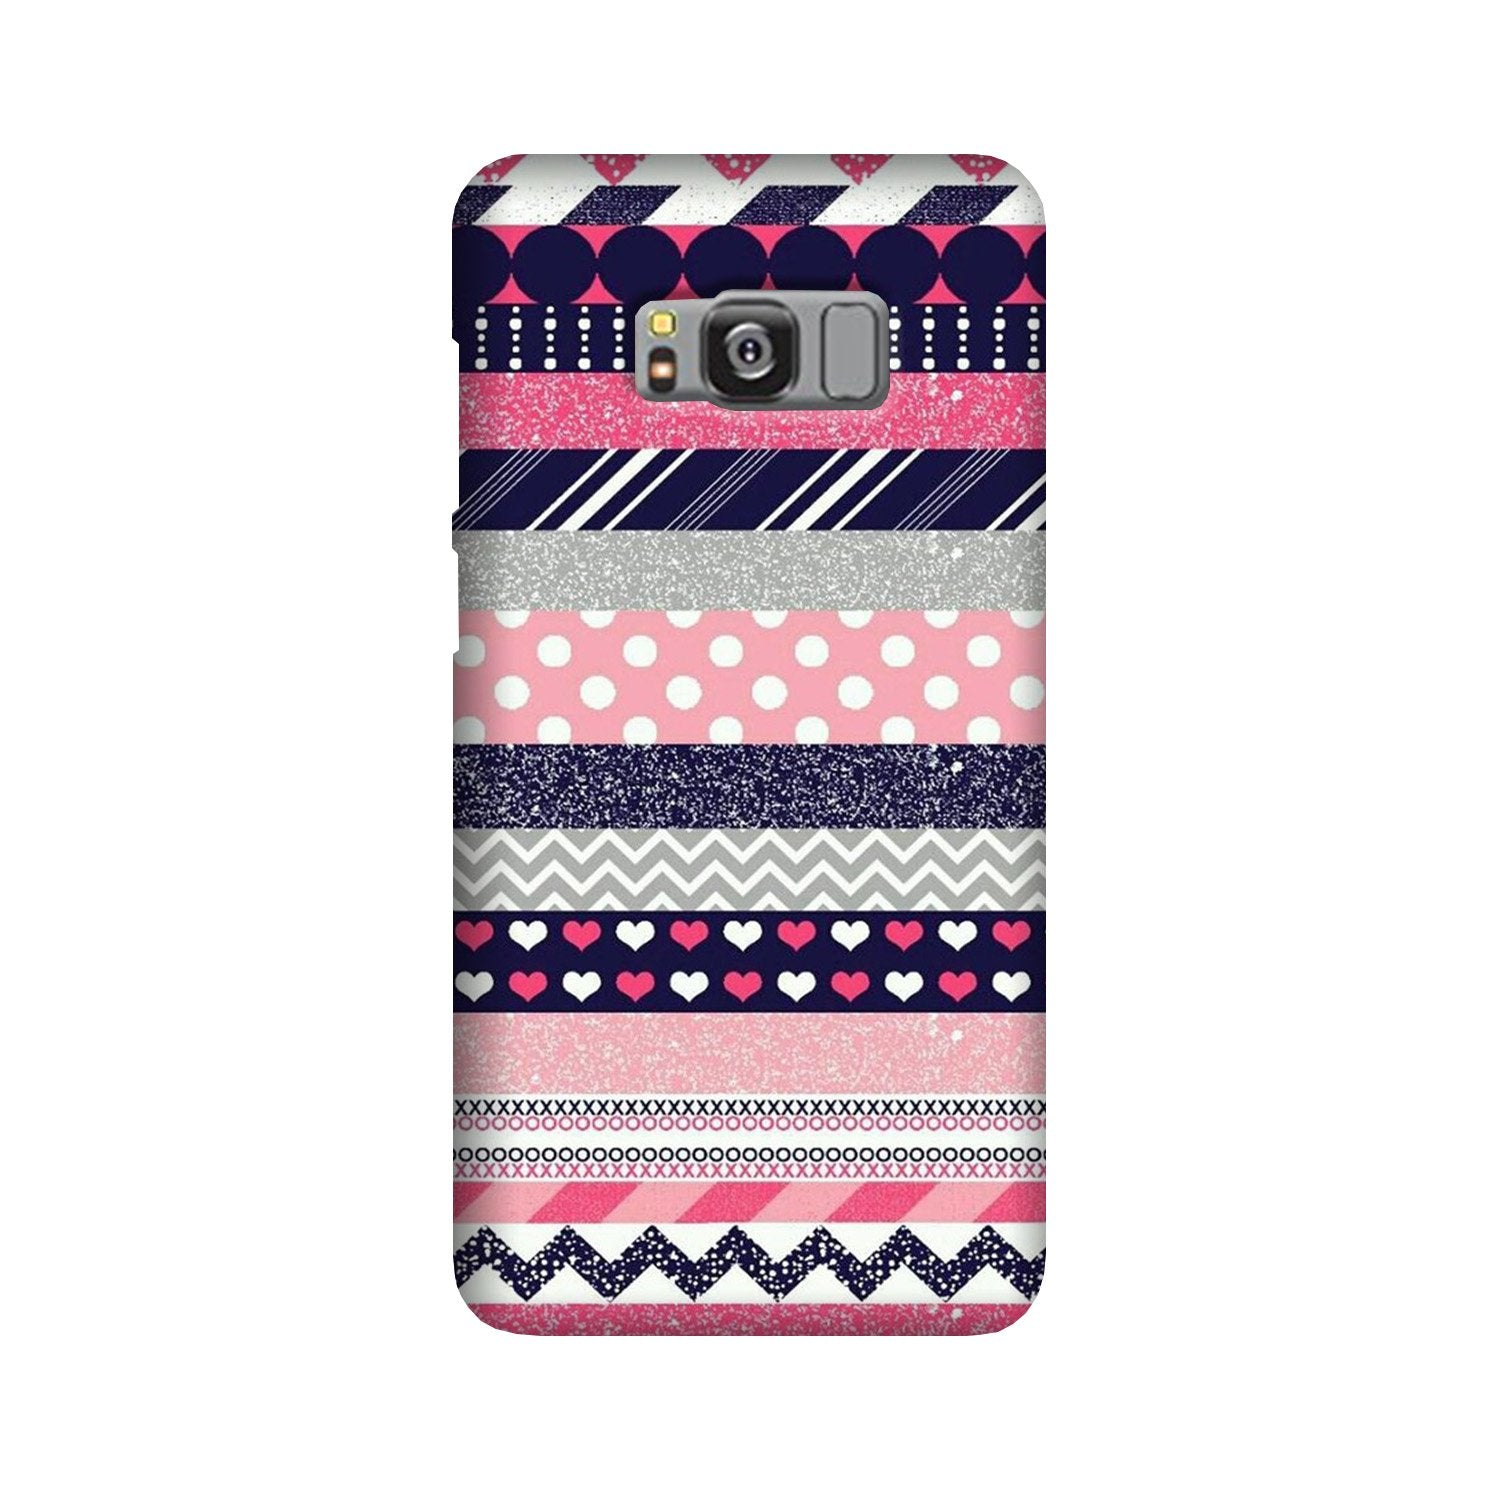 Pattern3 Case for Galaxy S8